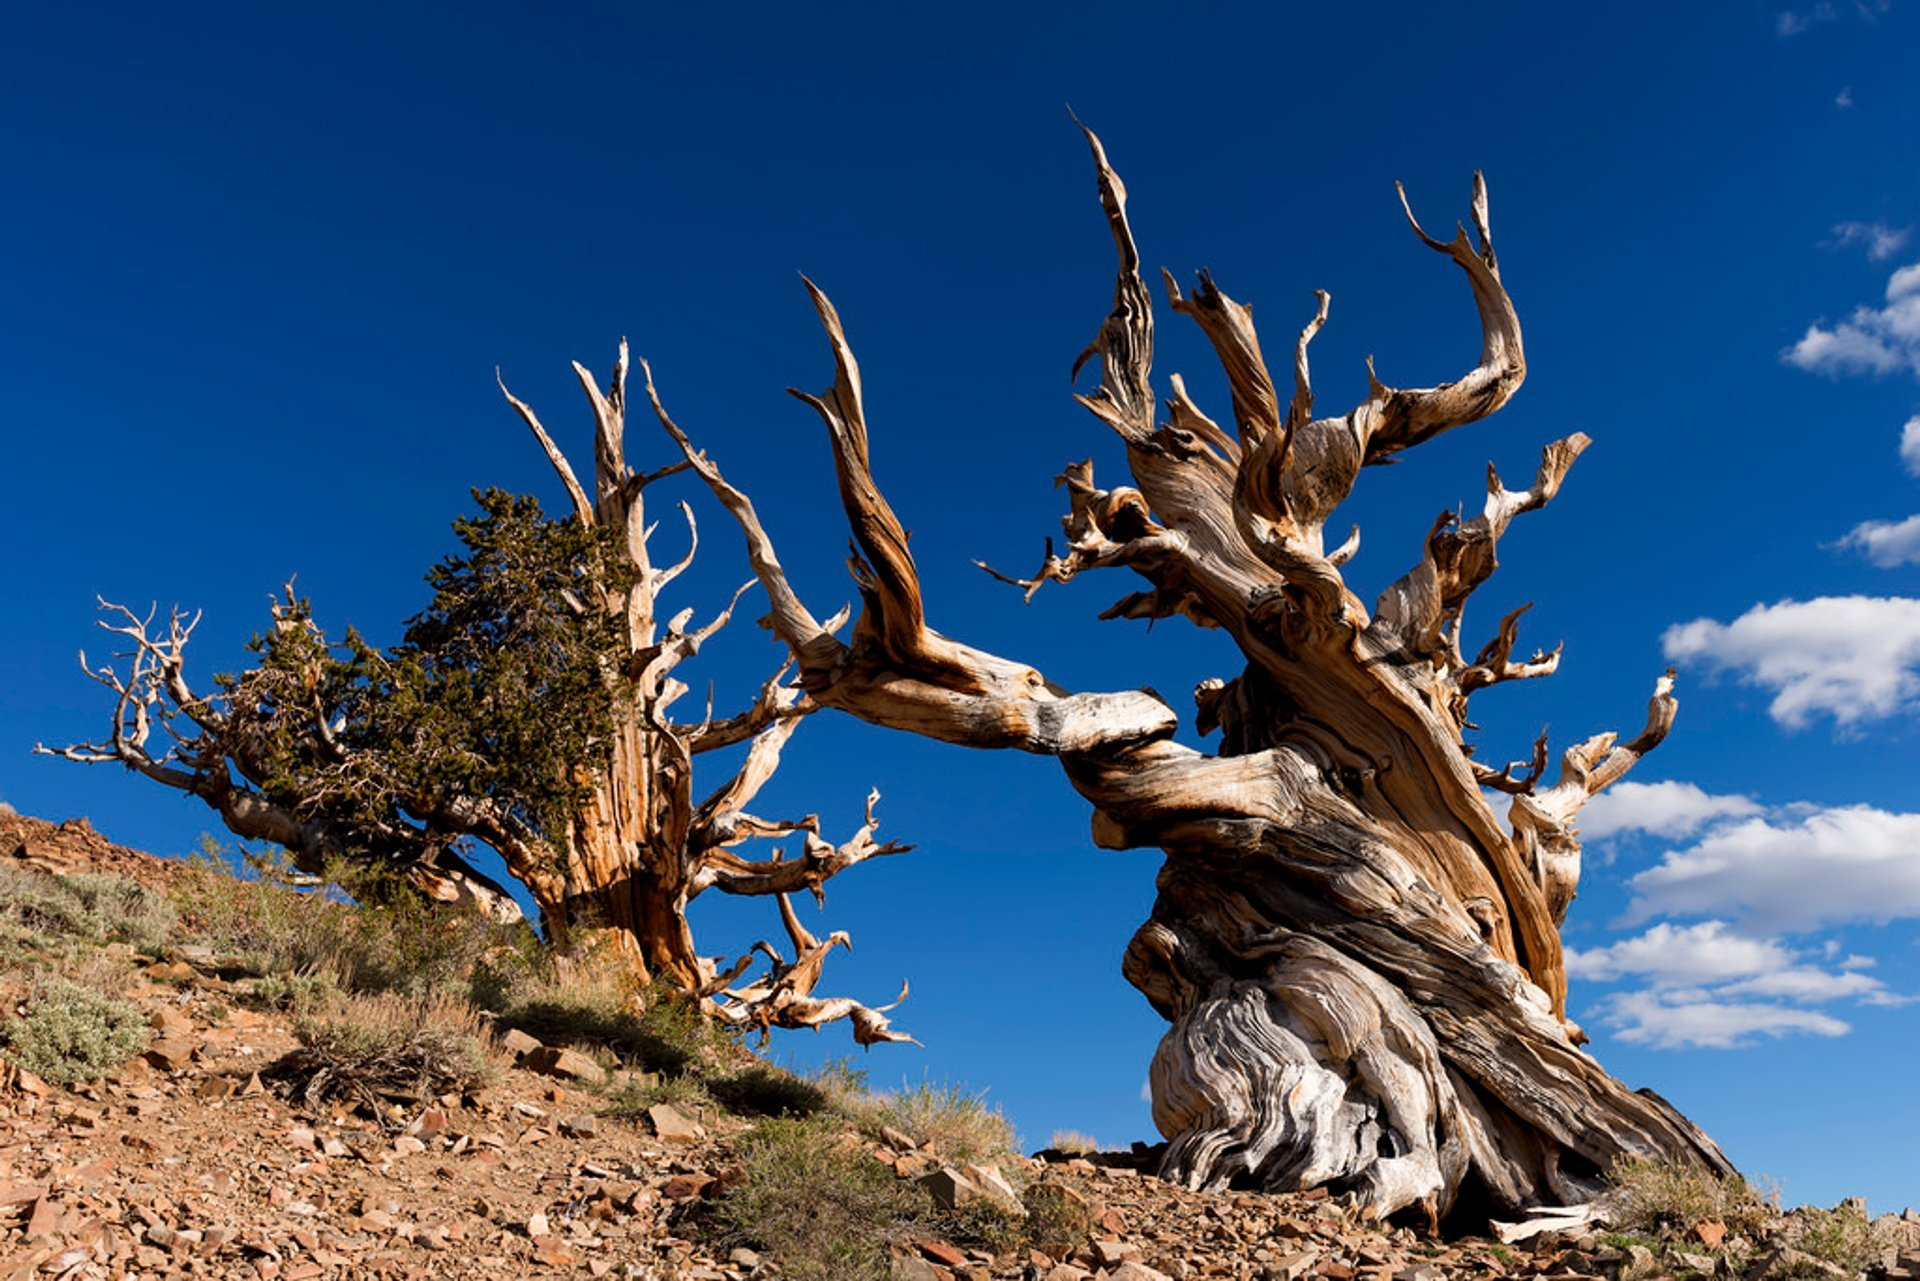 Best time to see Bristlecone Pines in California 2020